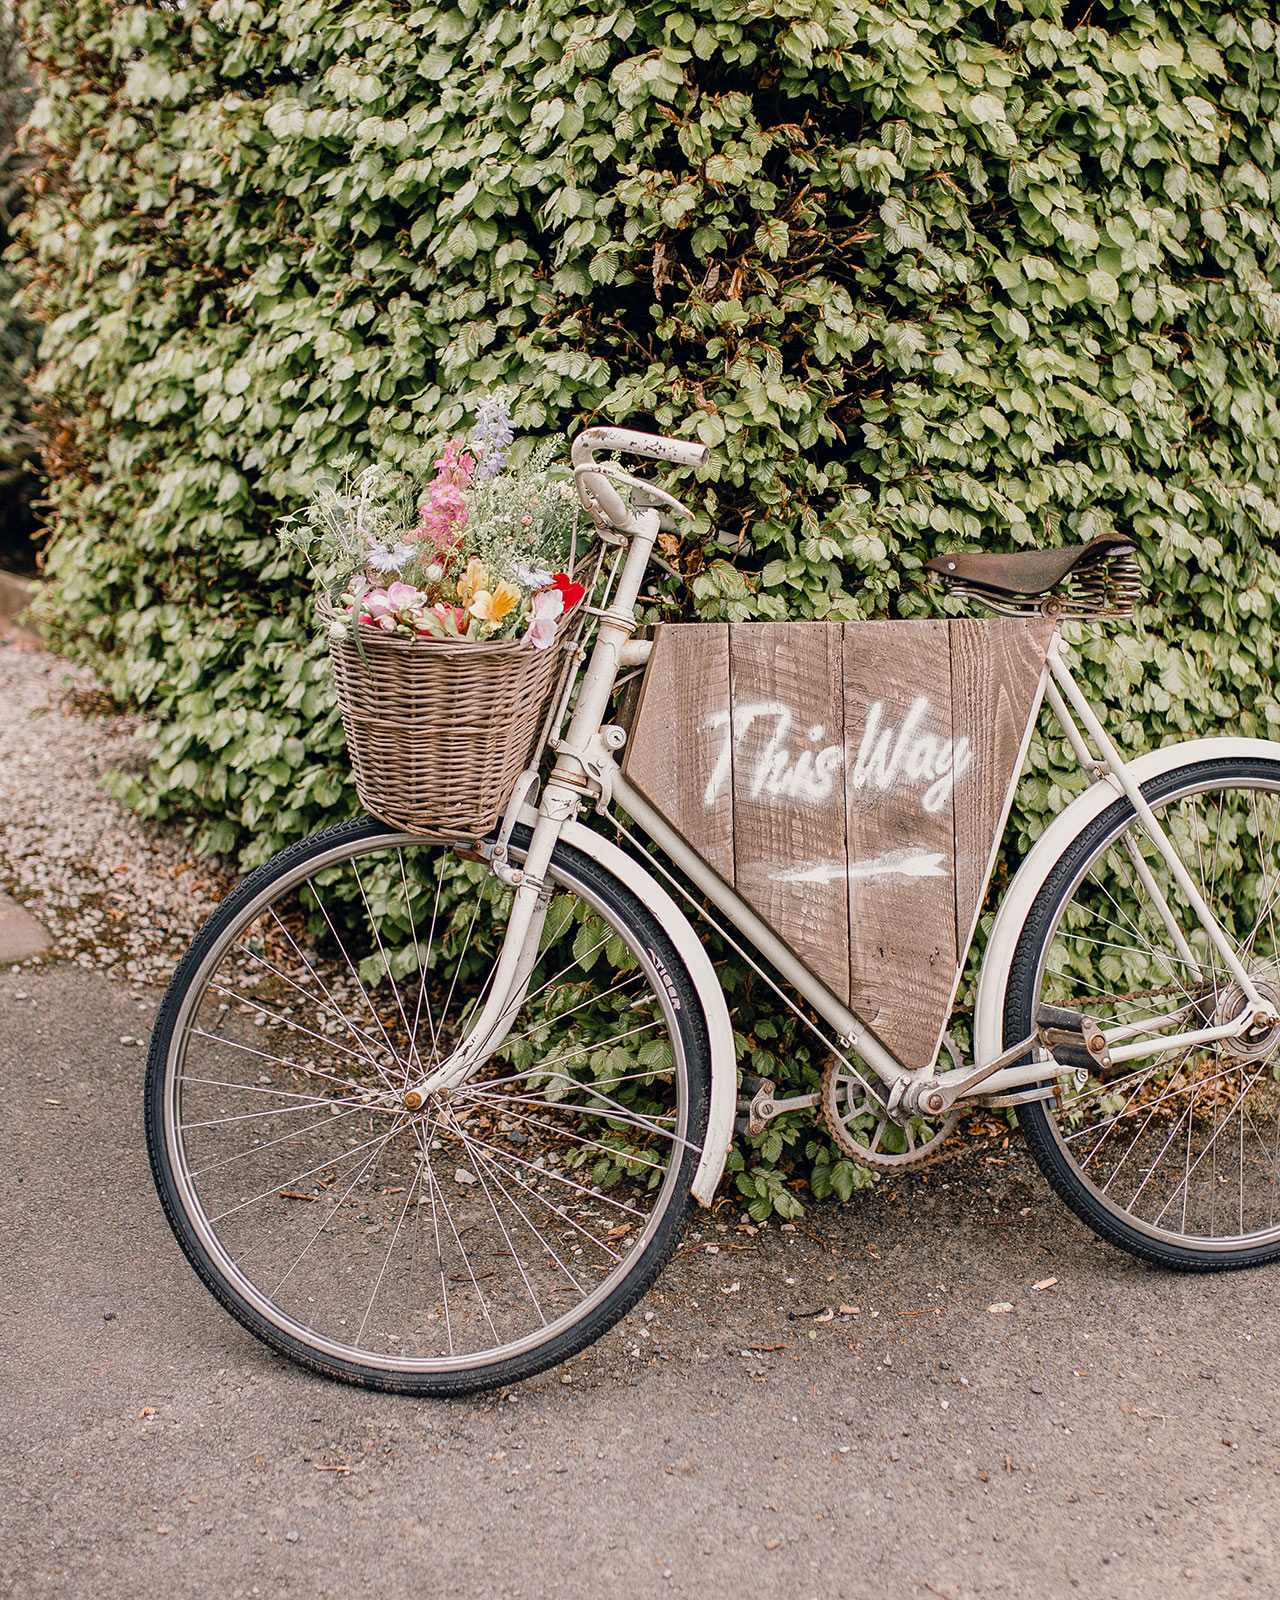 rustic bike directional sign with floral basket